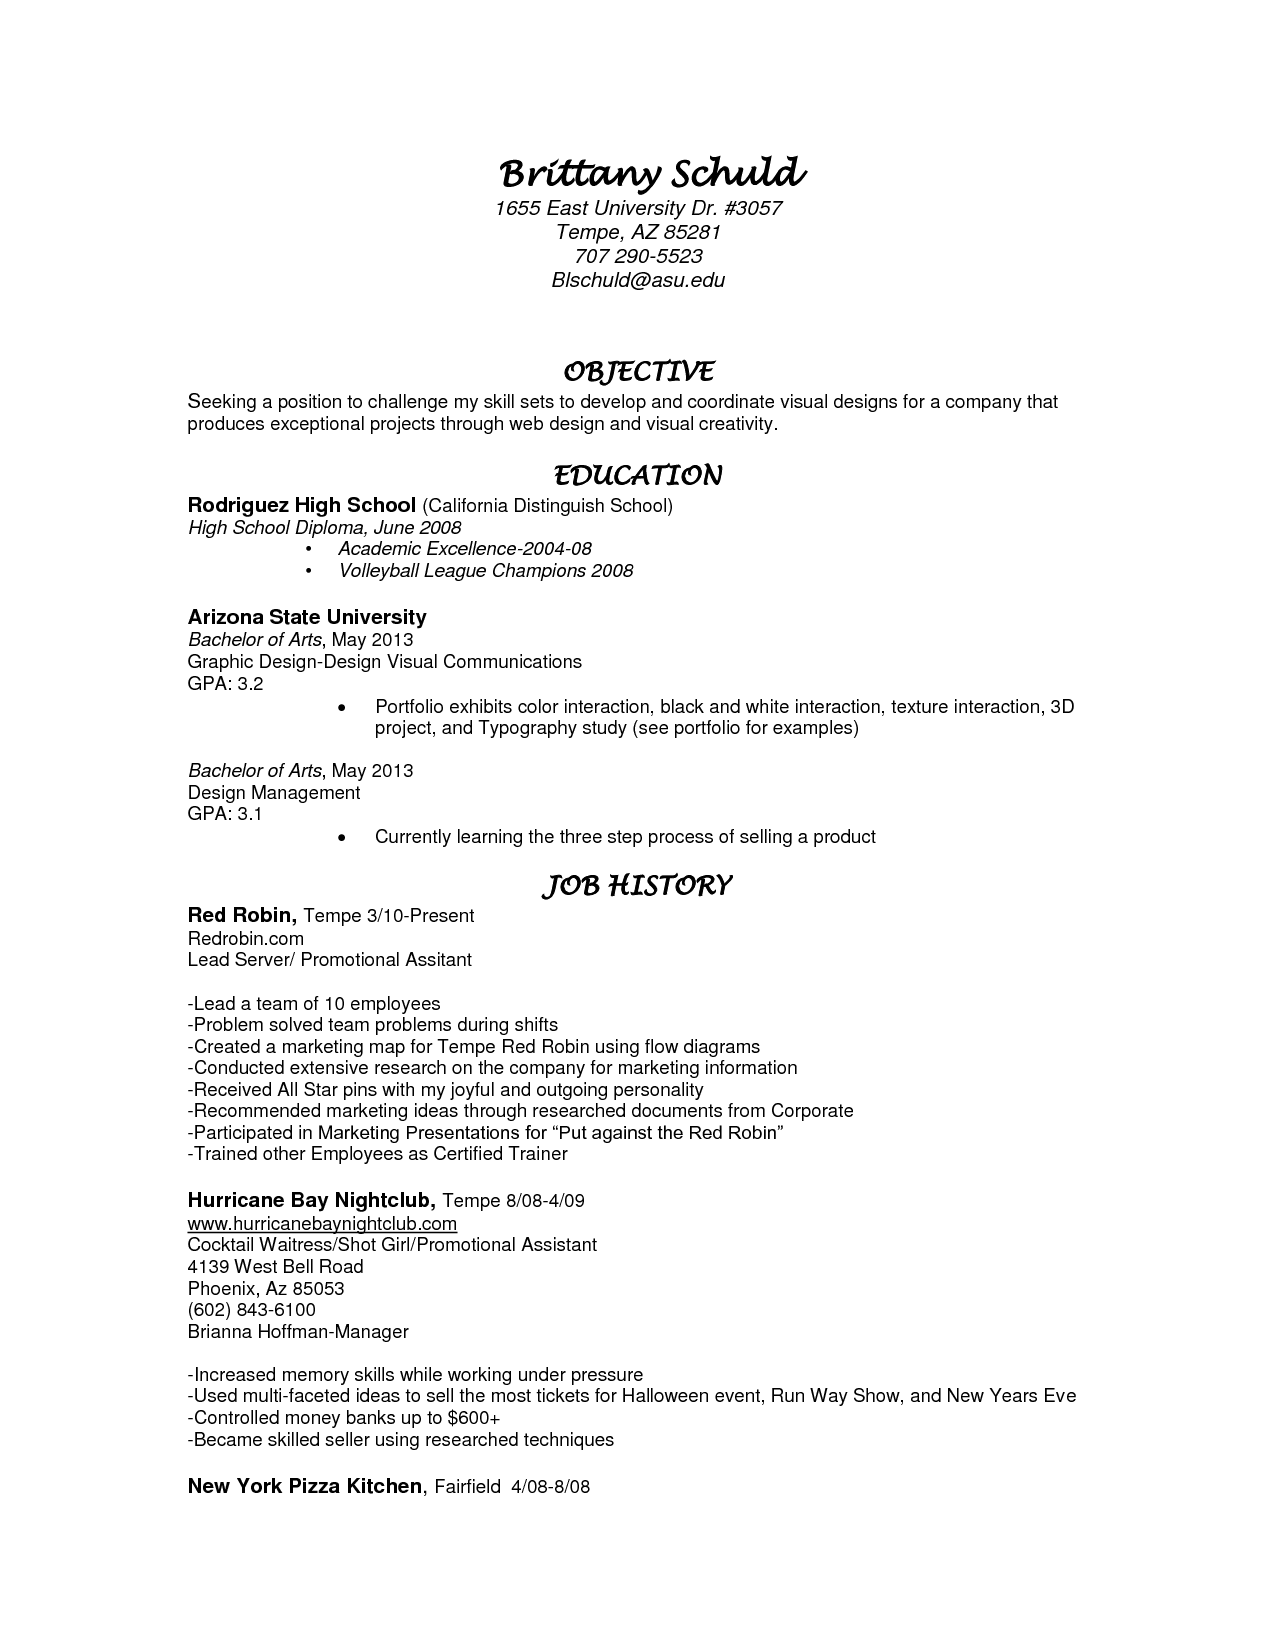 Waitress Job Description Resume Cover Letter Examples Waitress Well Written Essay Waiter For